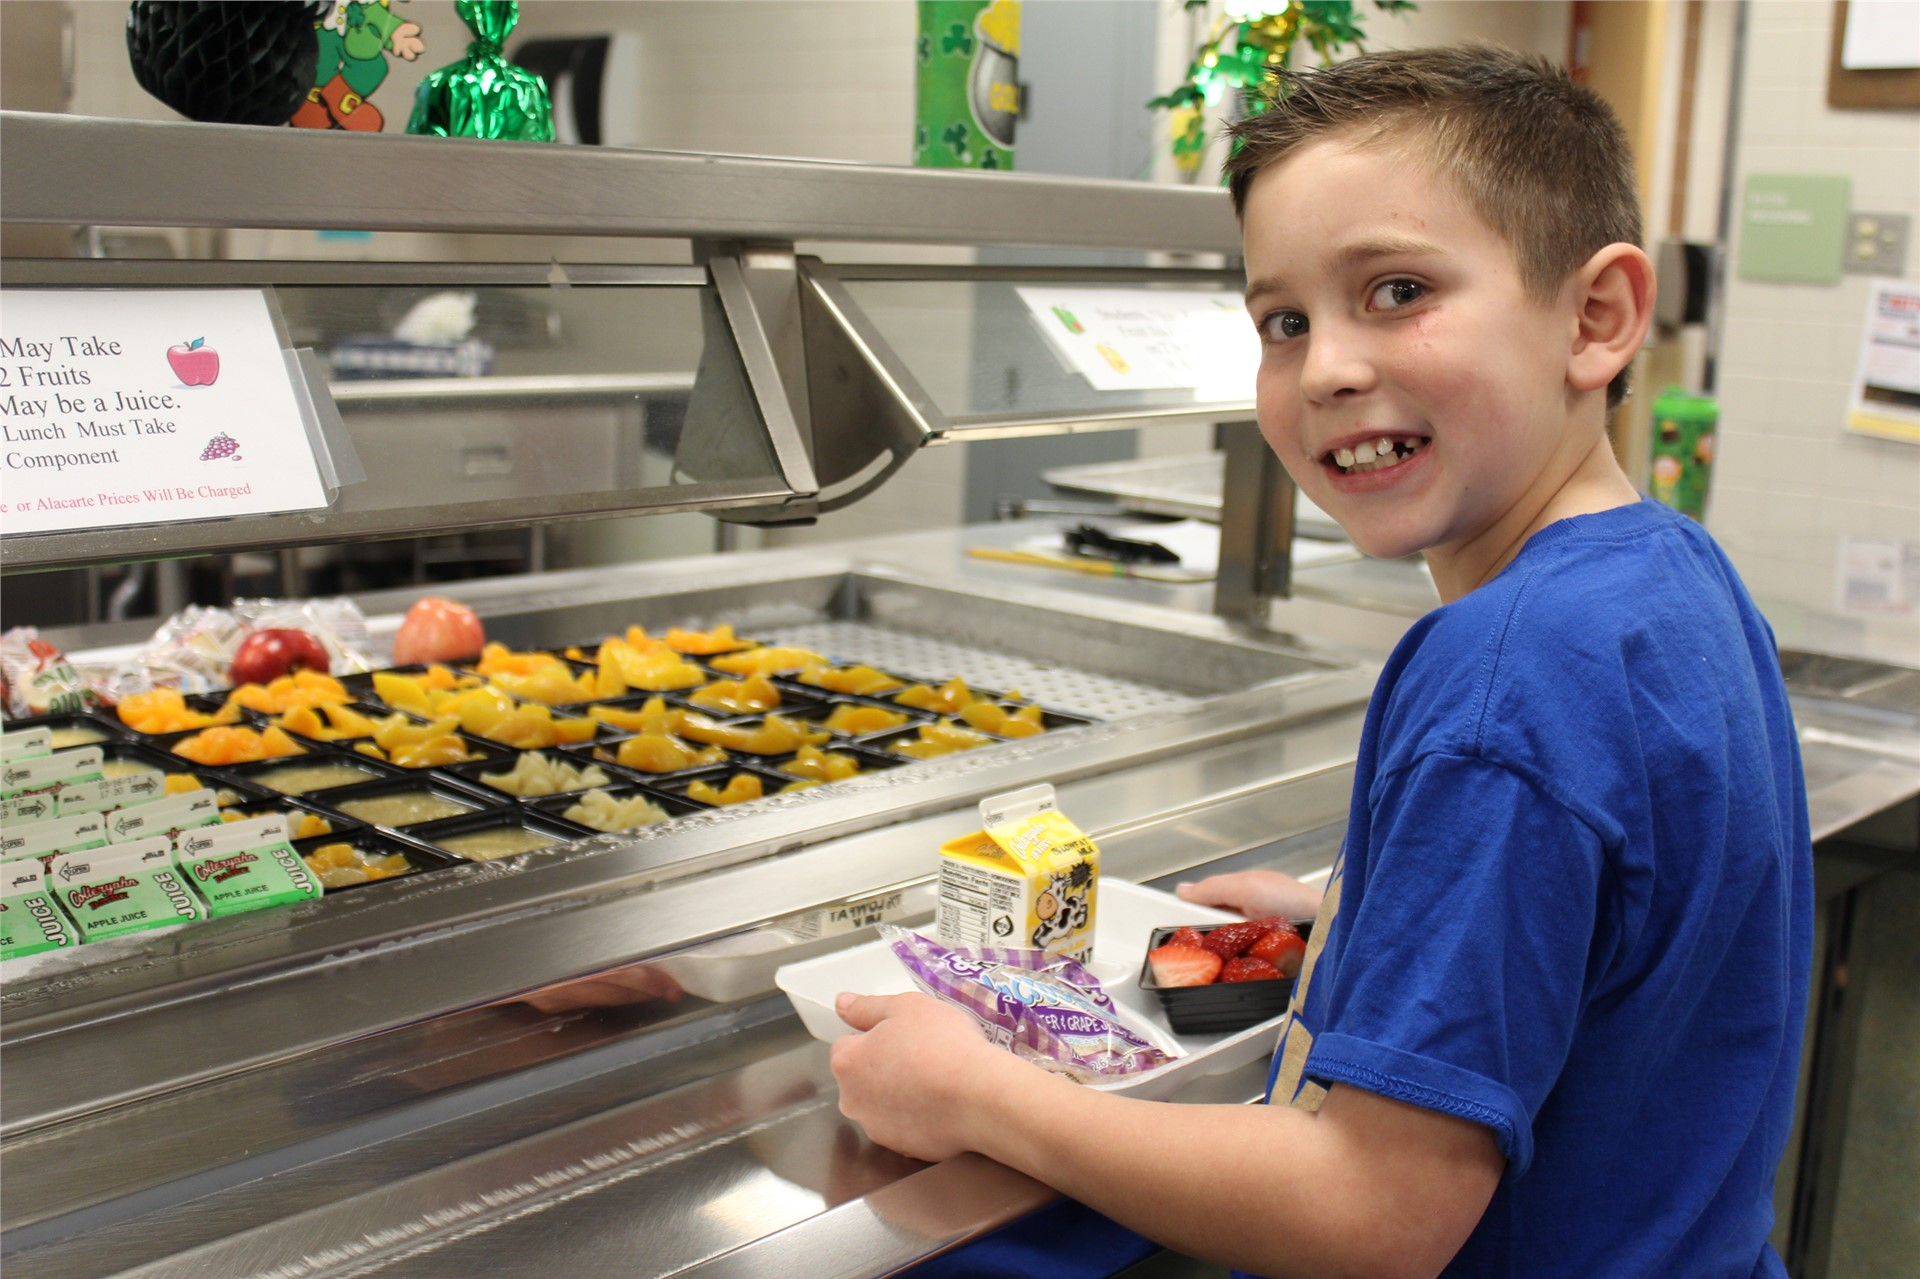 Elementary Student with Lunch Tray and Healthy Options